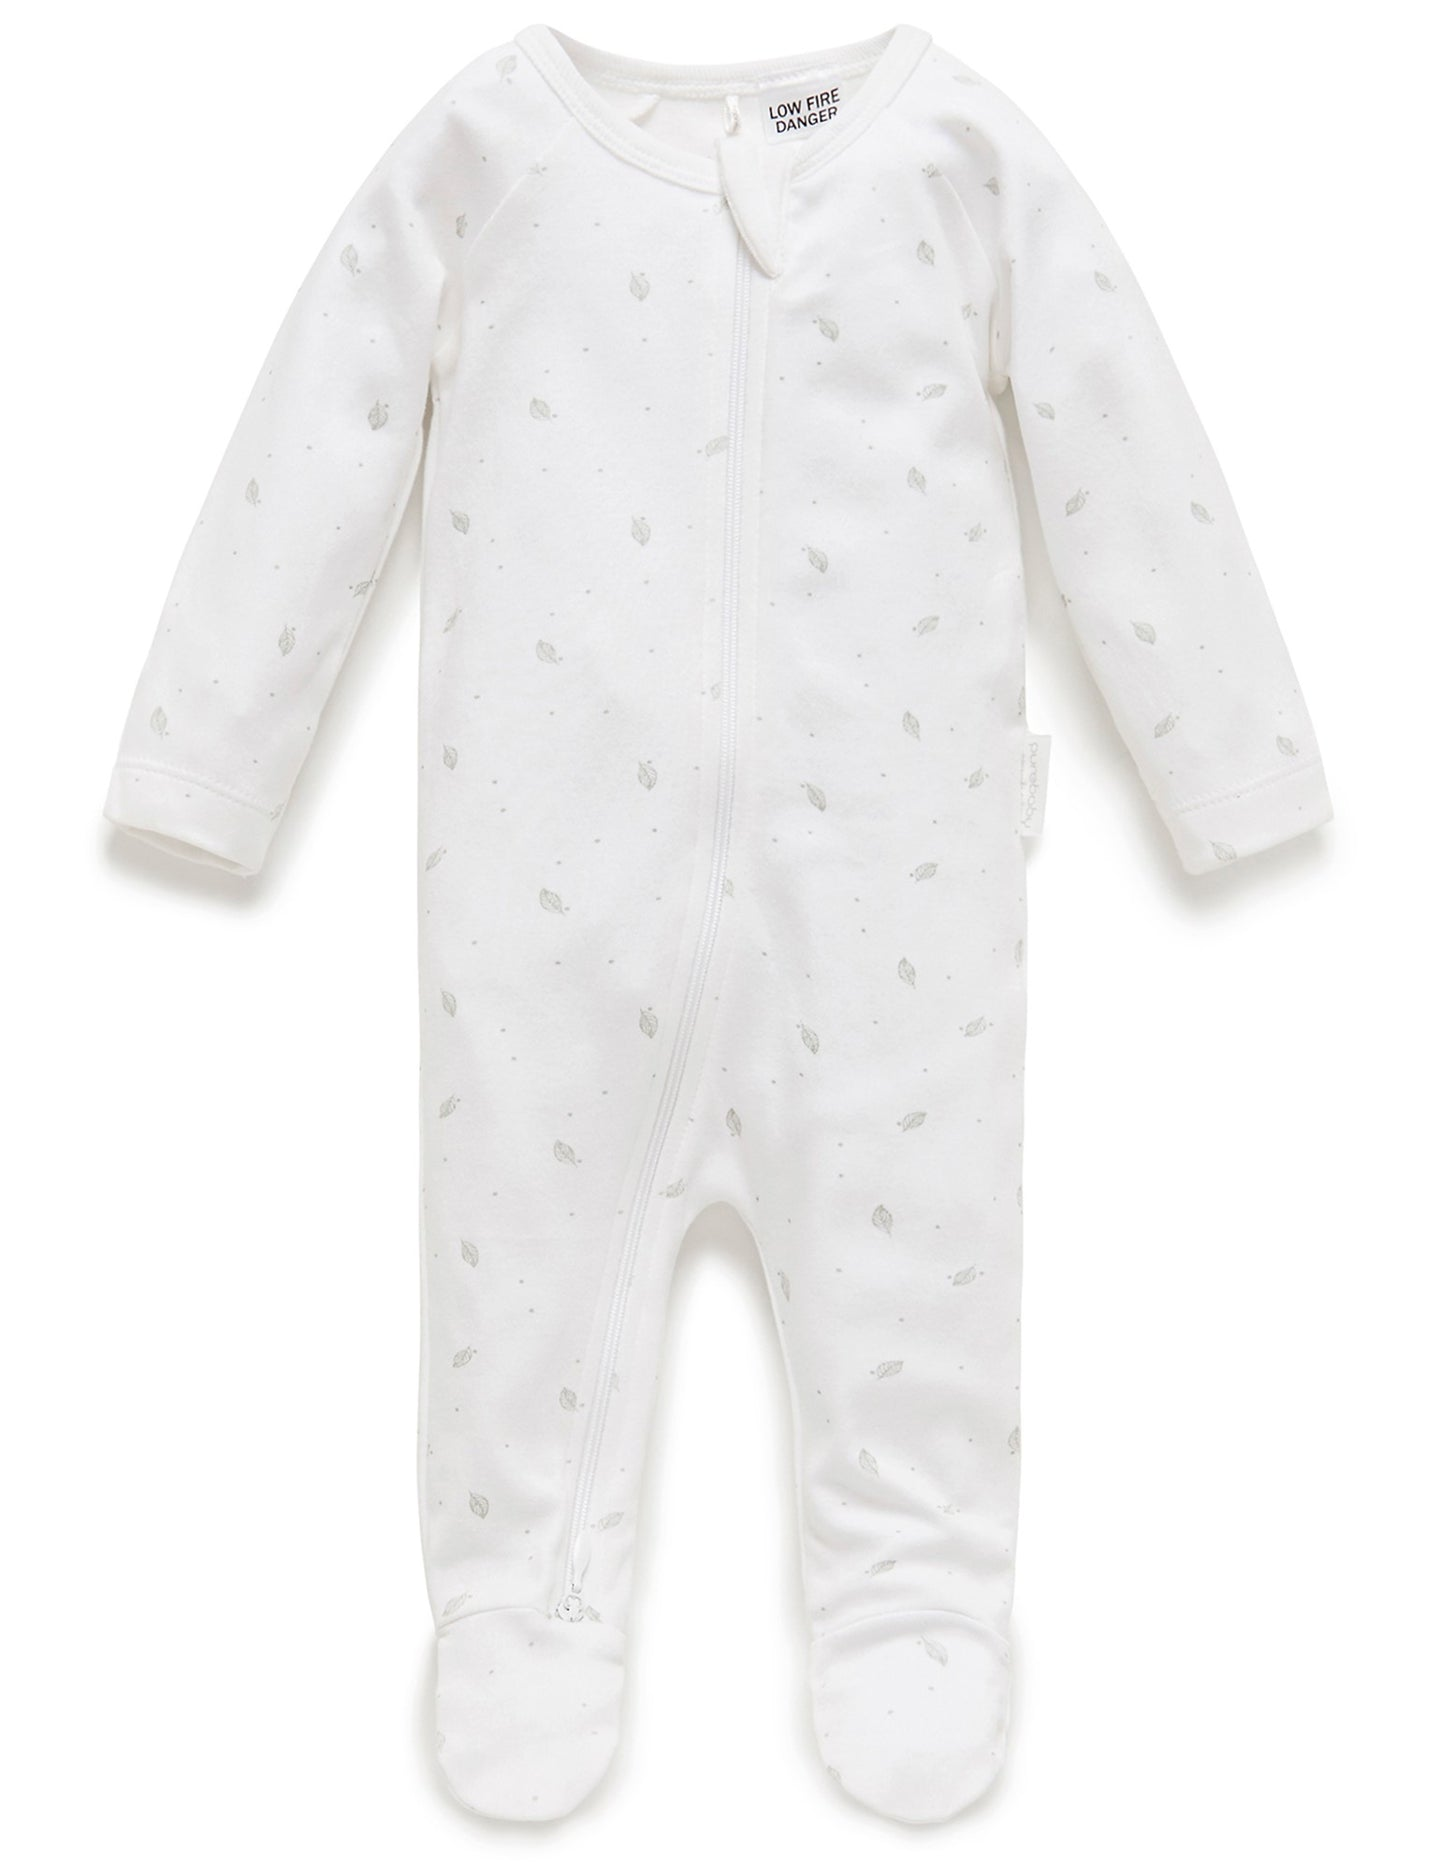 Purebaby Grey Leaf Zip Growsuit